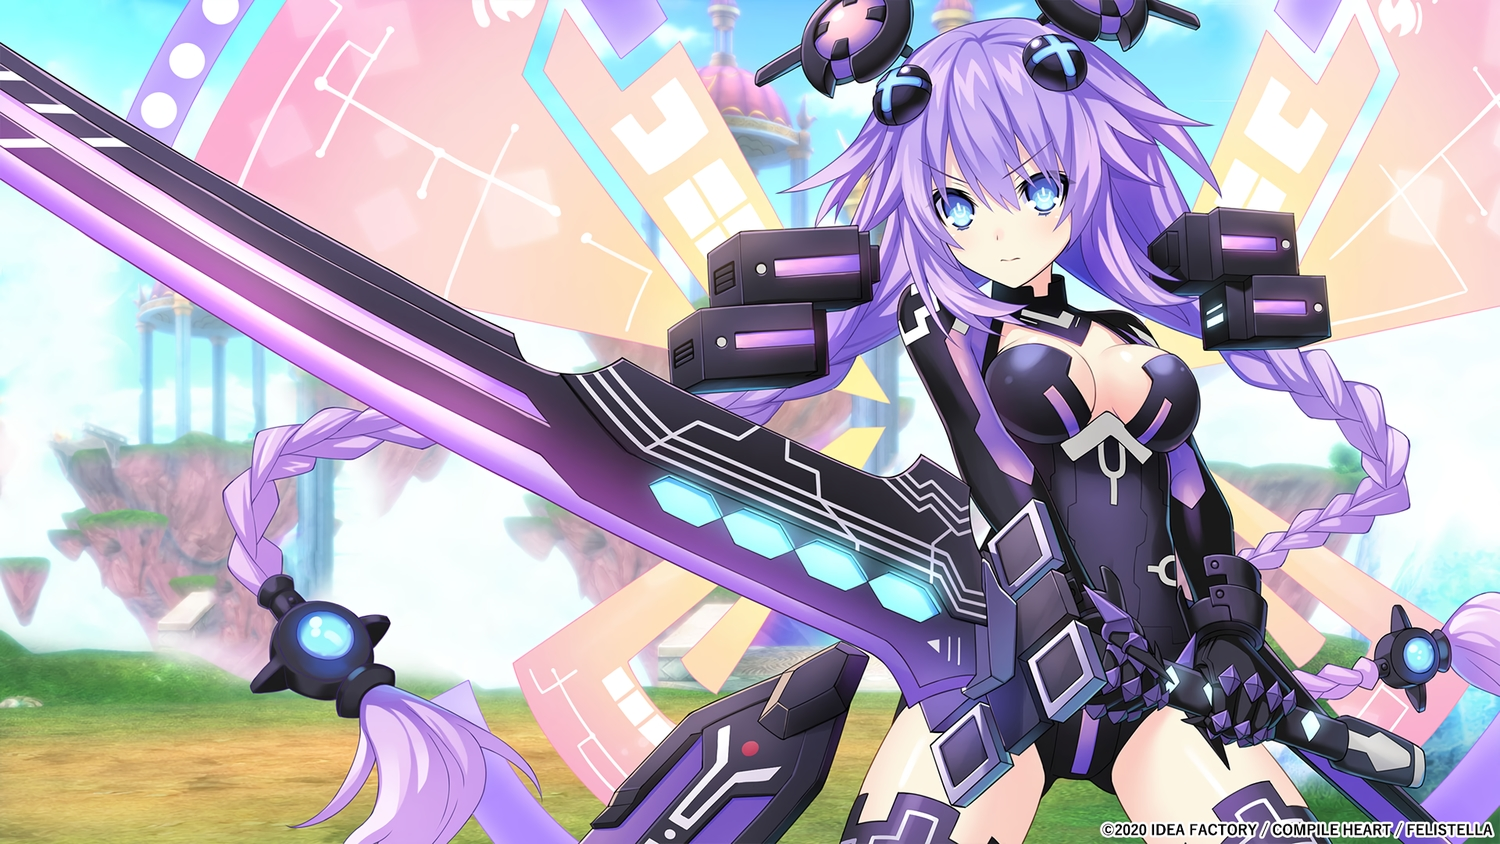 aqua_eyes bodysuit breasts gloves hyperdimension_neptunia long_hair purple_hair purple_heart sword tagme_(artist) weapon wings